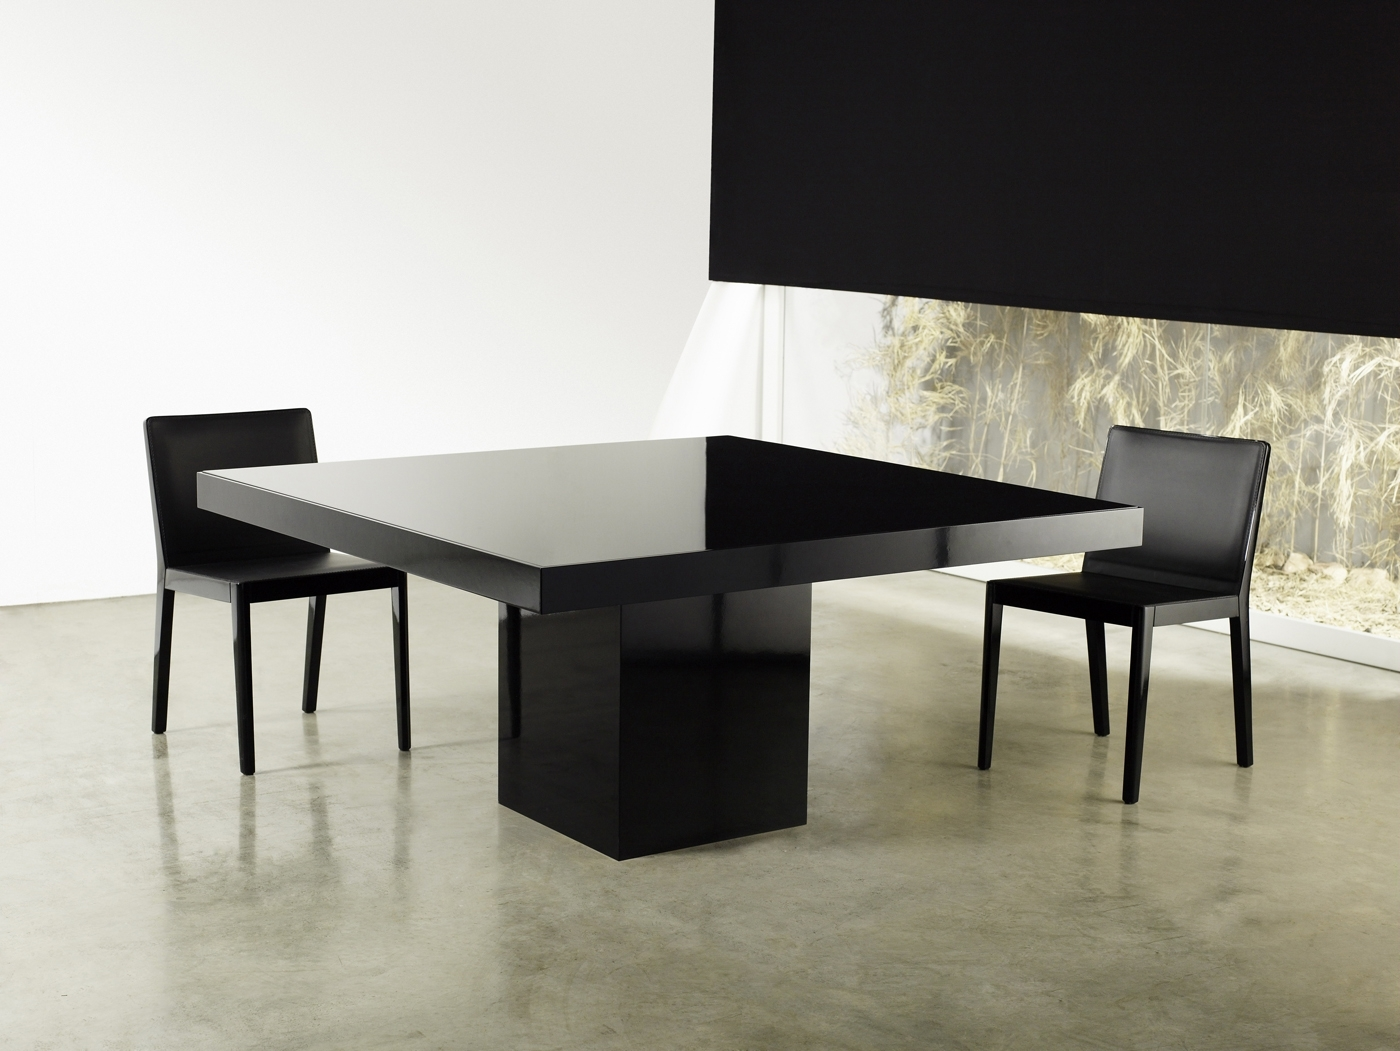 Square Contemporary High Gloss Dining Table Lexington Fayette Intended For Latest Contemporary Dining Tables (View 25 of 25)